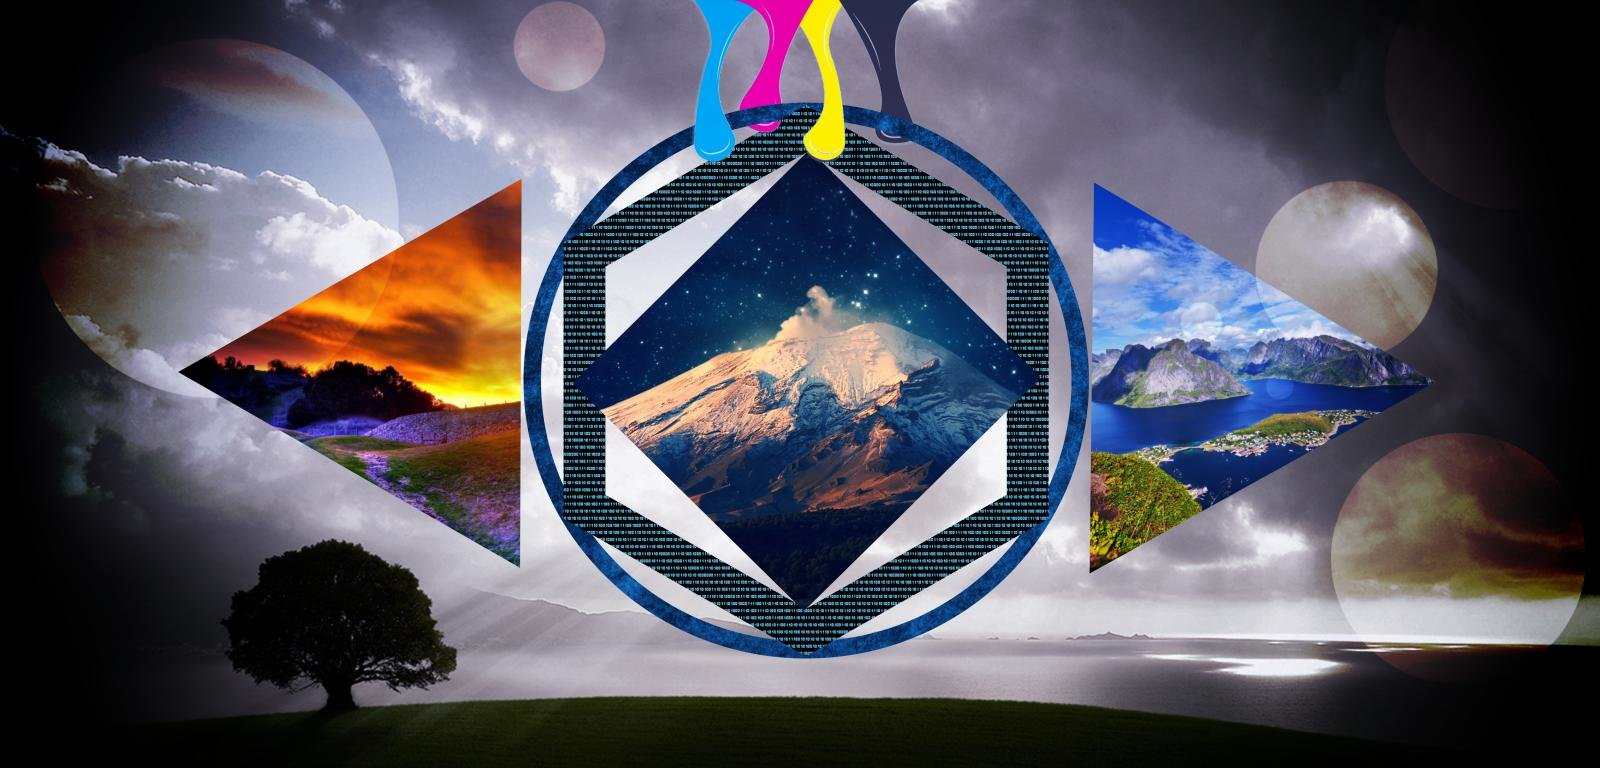 Polyscape Wallpapers Hd For Desktop Backgrounds